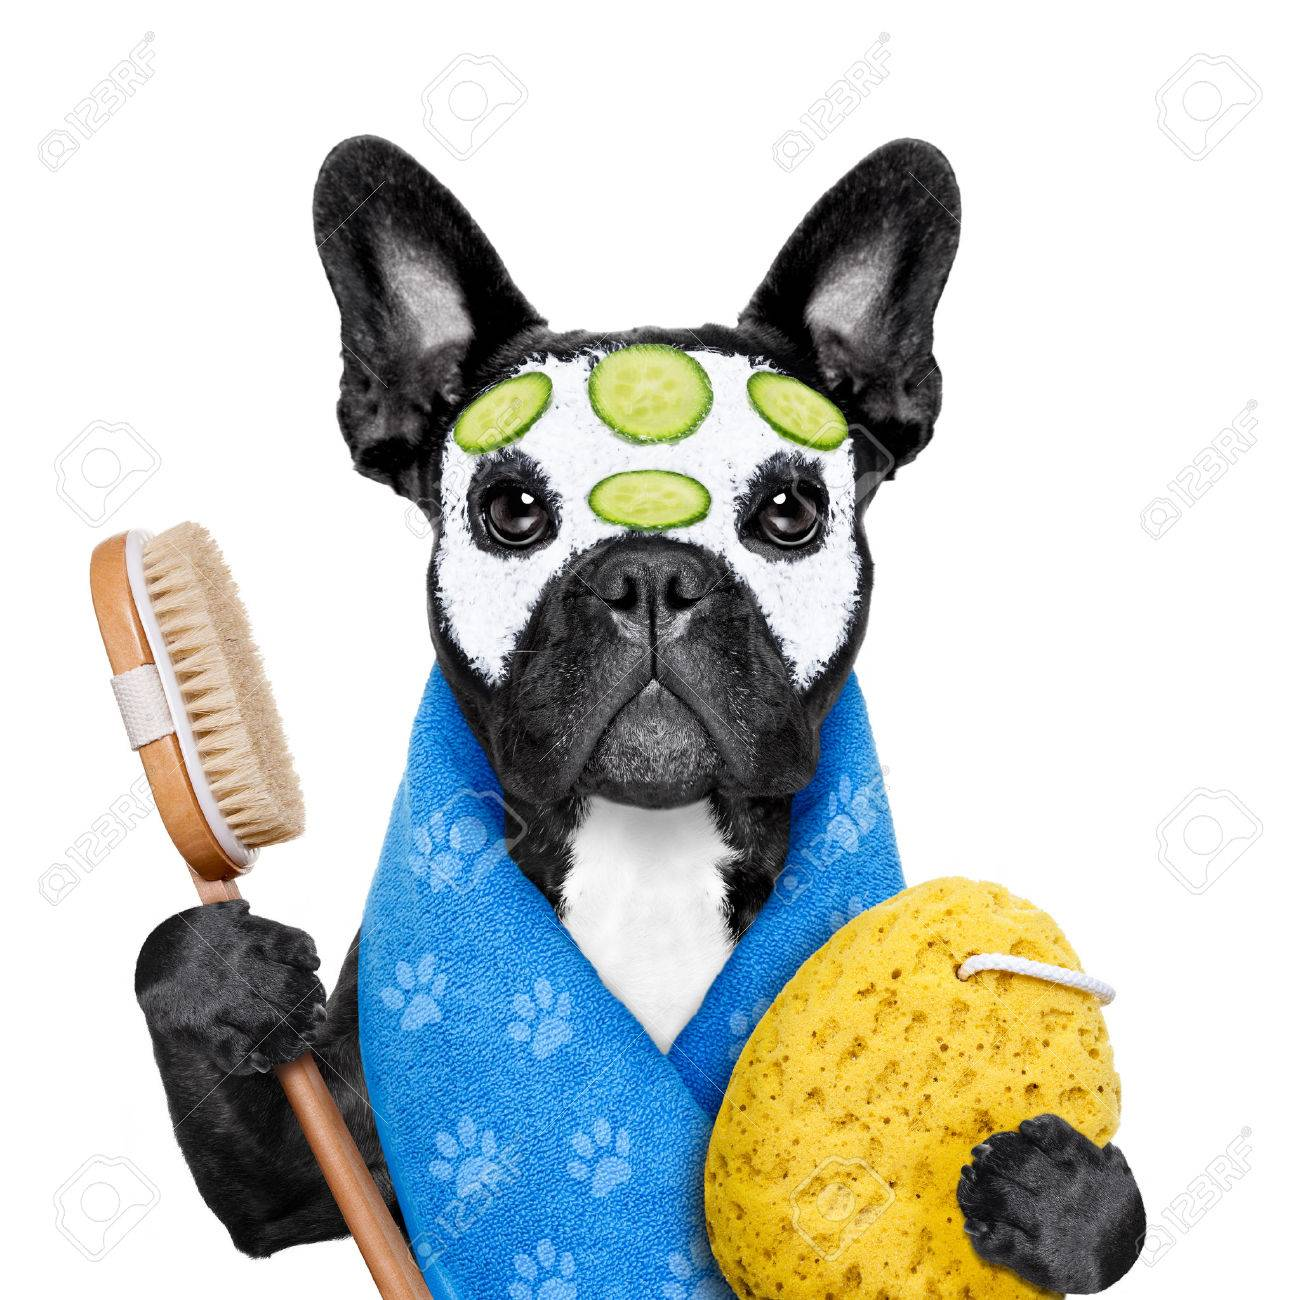 french bulldog dog relaxing  with beauty mask in   spa wellness center ,getting a facial treatment with  moisturizing cream mask and cucumber , sponge and brush, isolated on white background Stock Photo - 51513025